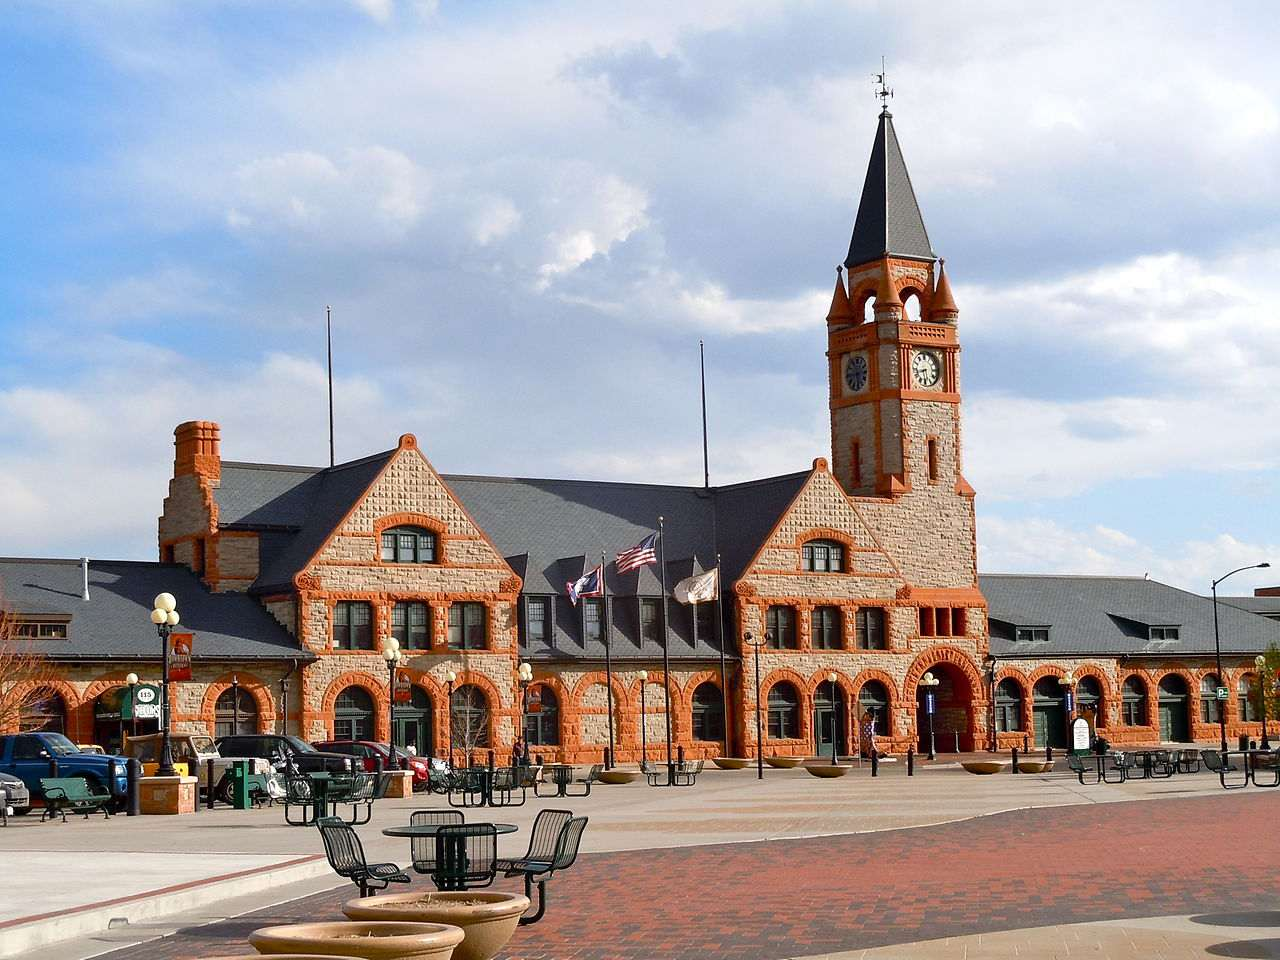 The Cheyenne Depot Museum and Plaza